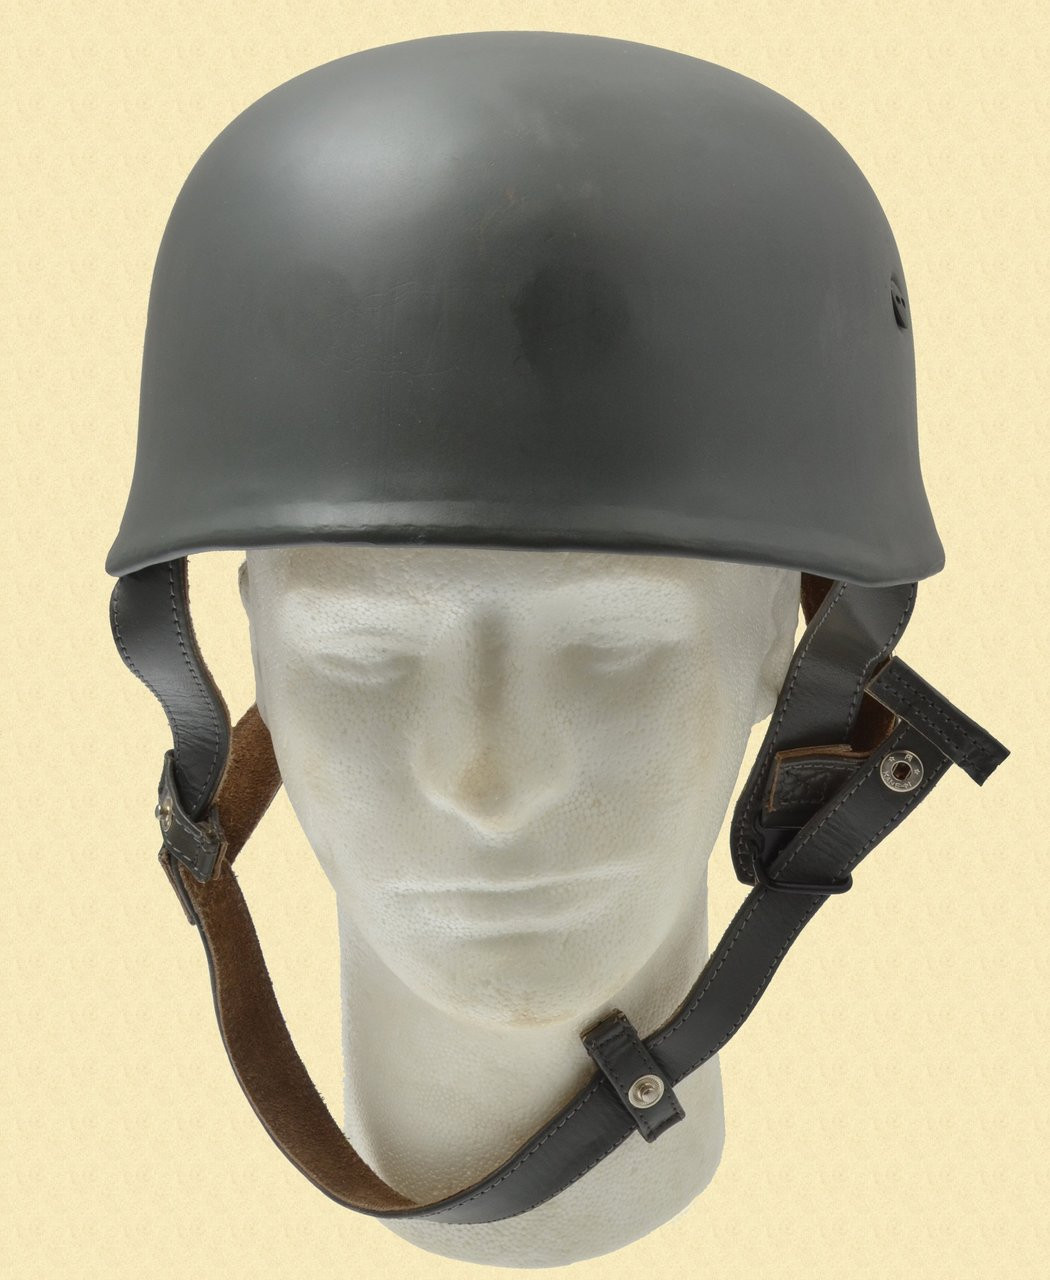 REPLICA WWII GERMAN PARATROOPER HELMET - M7218